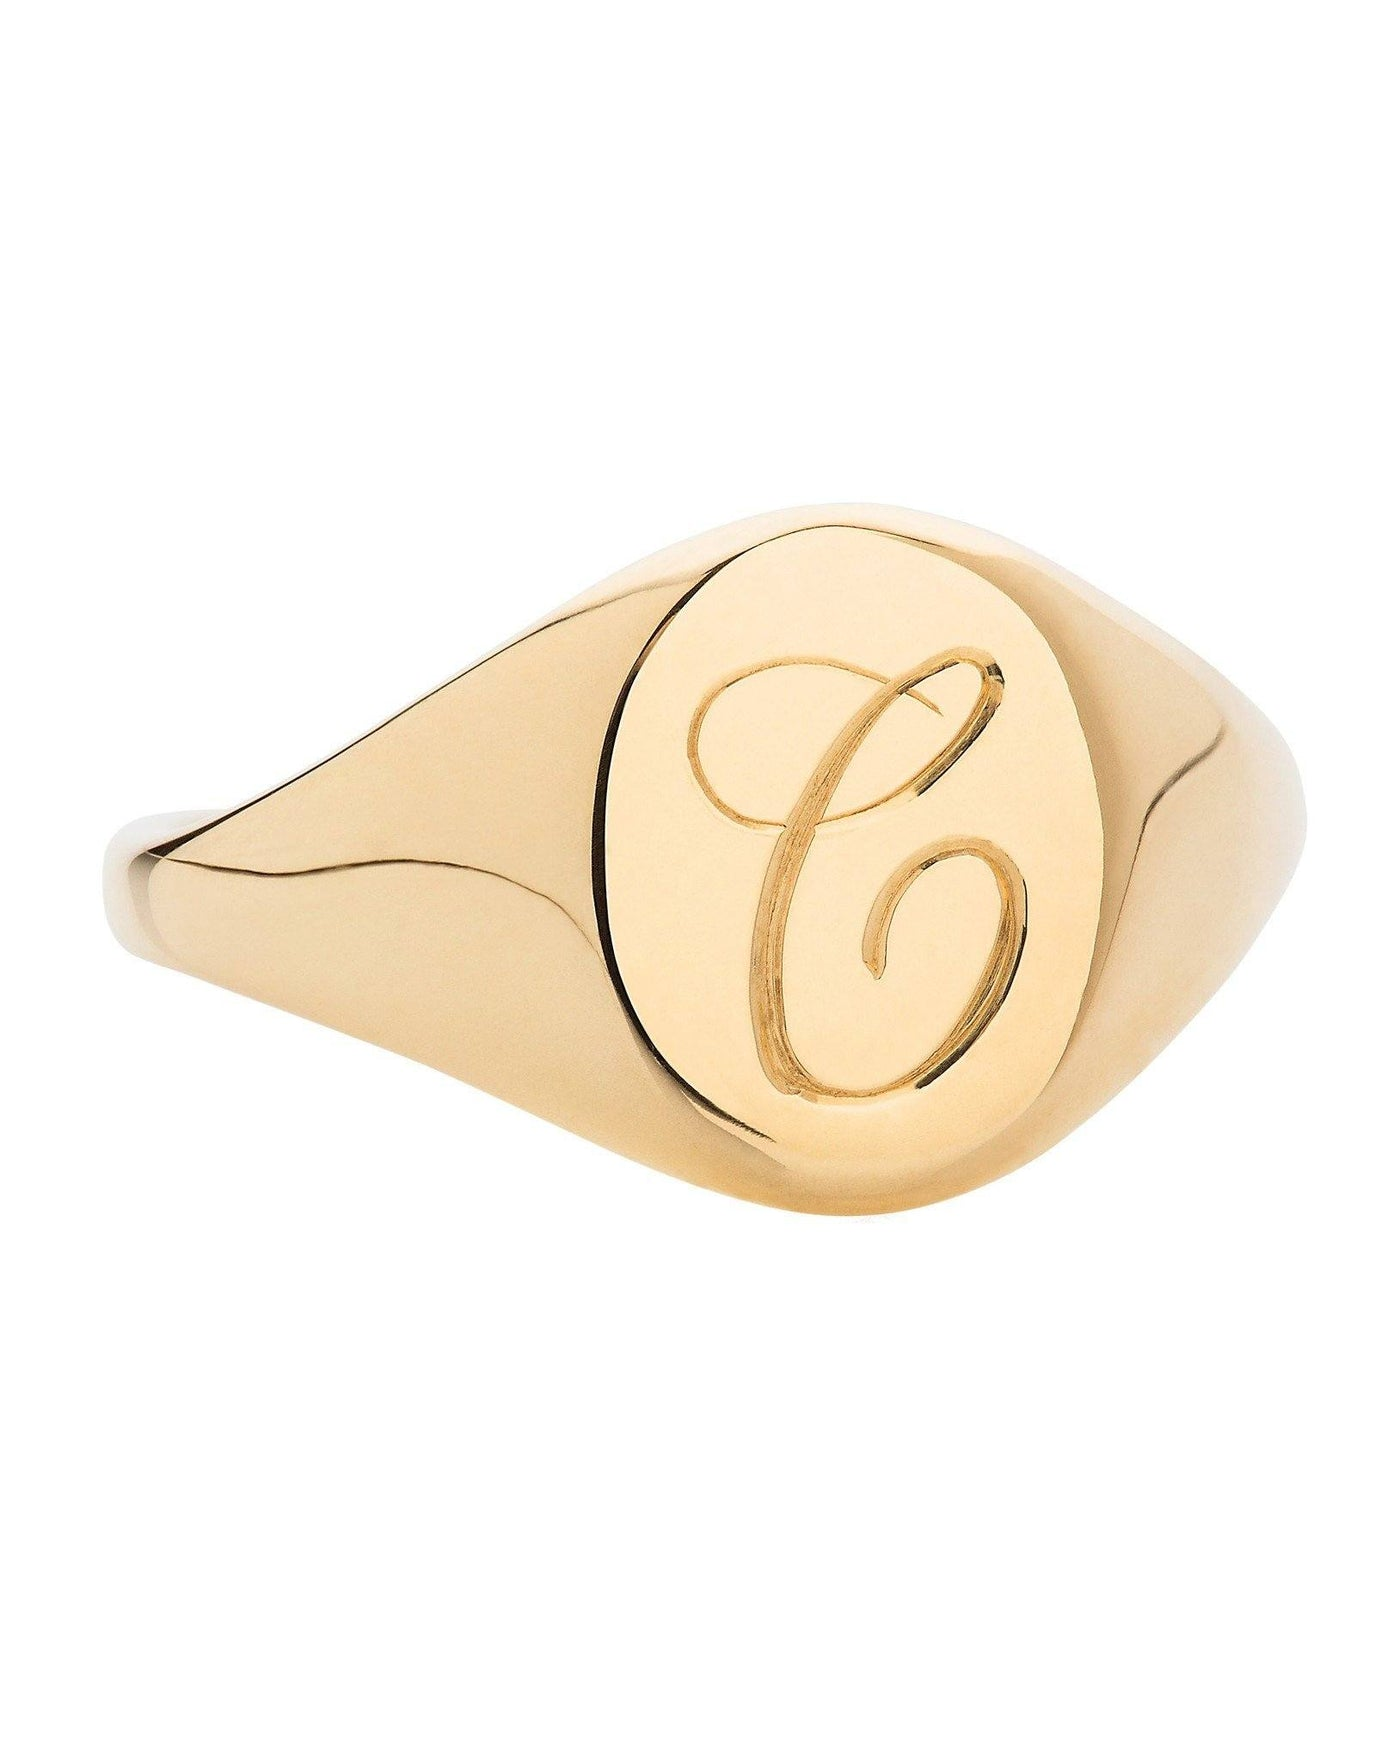 Personalised Initial Signet Ring - Laura Lee Jewellery - 1